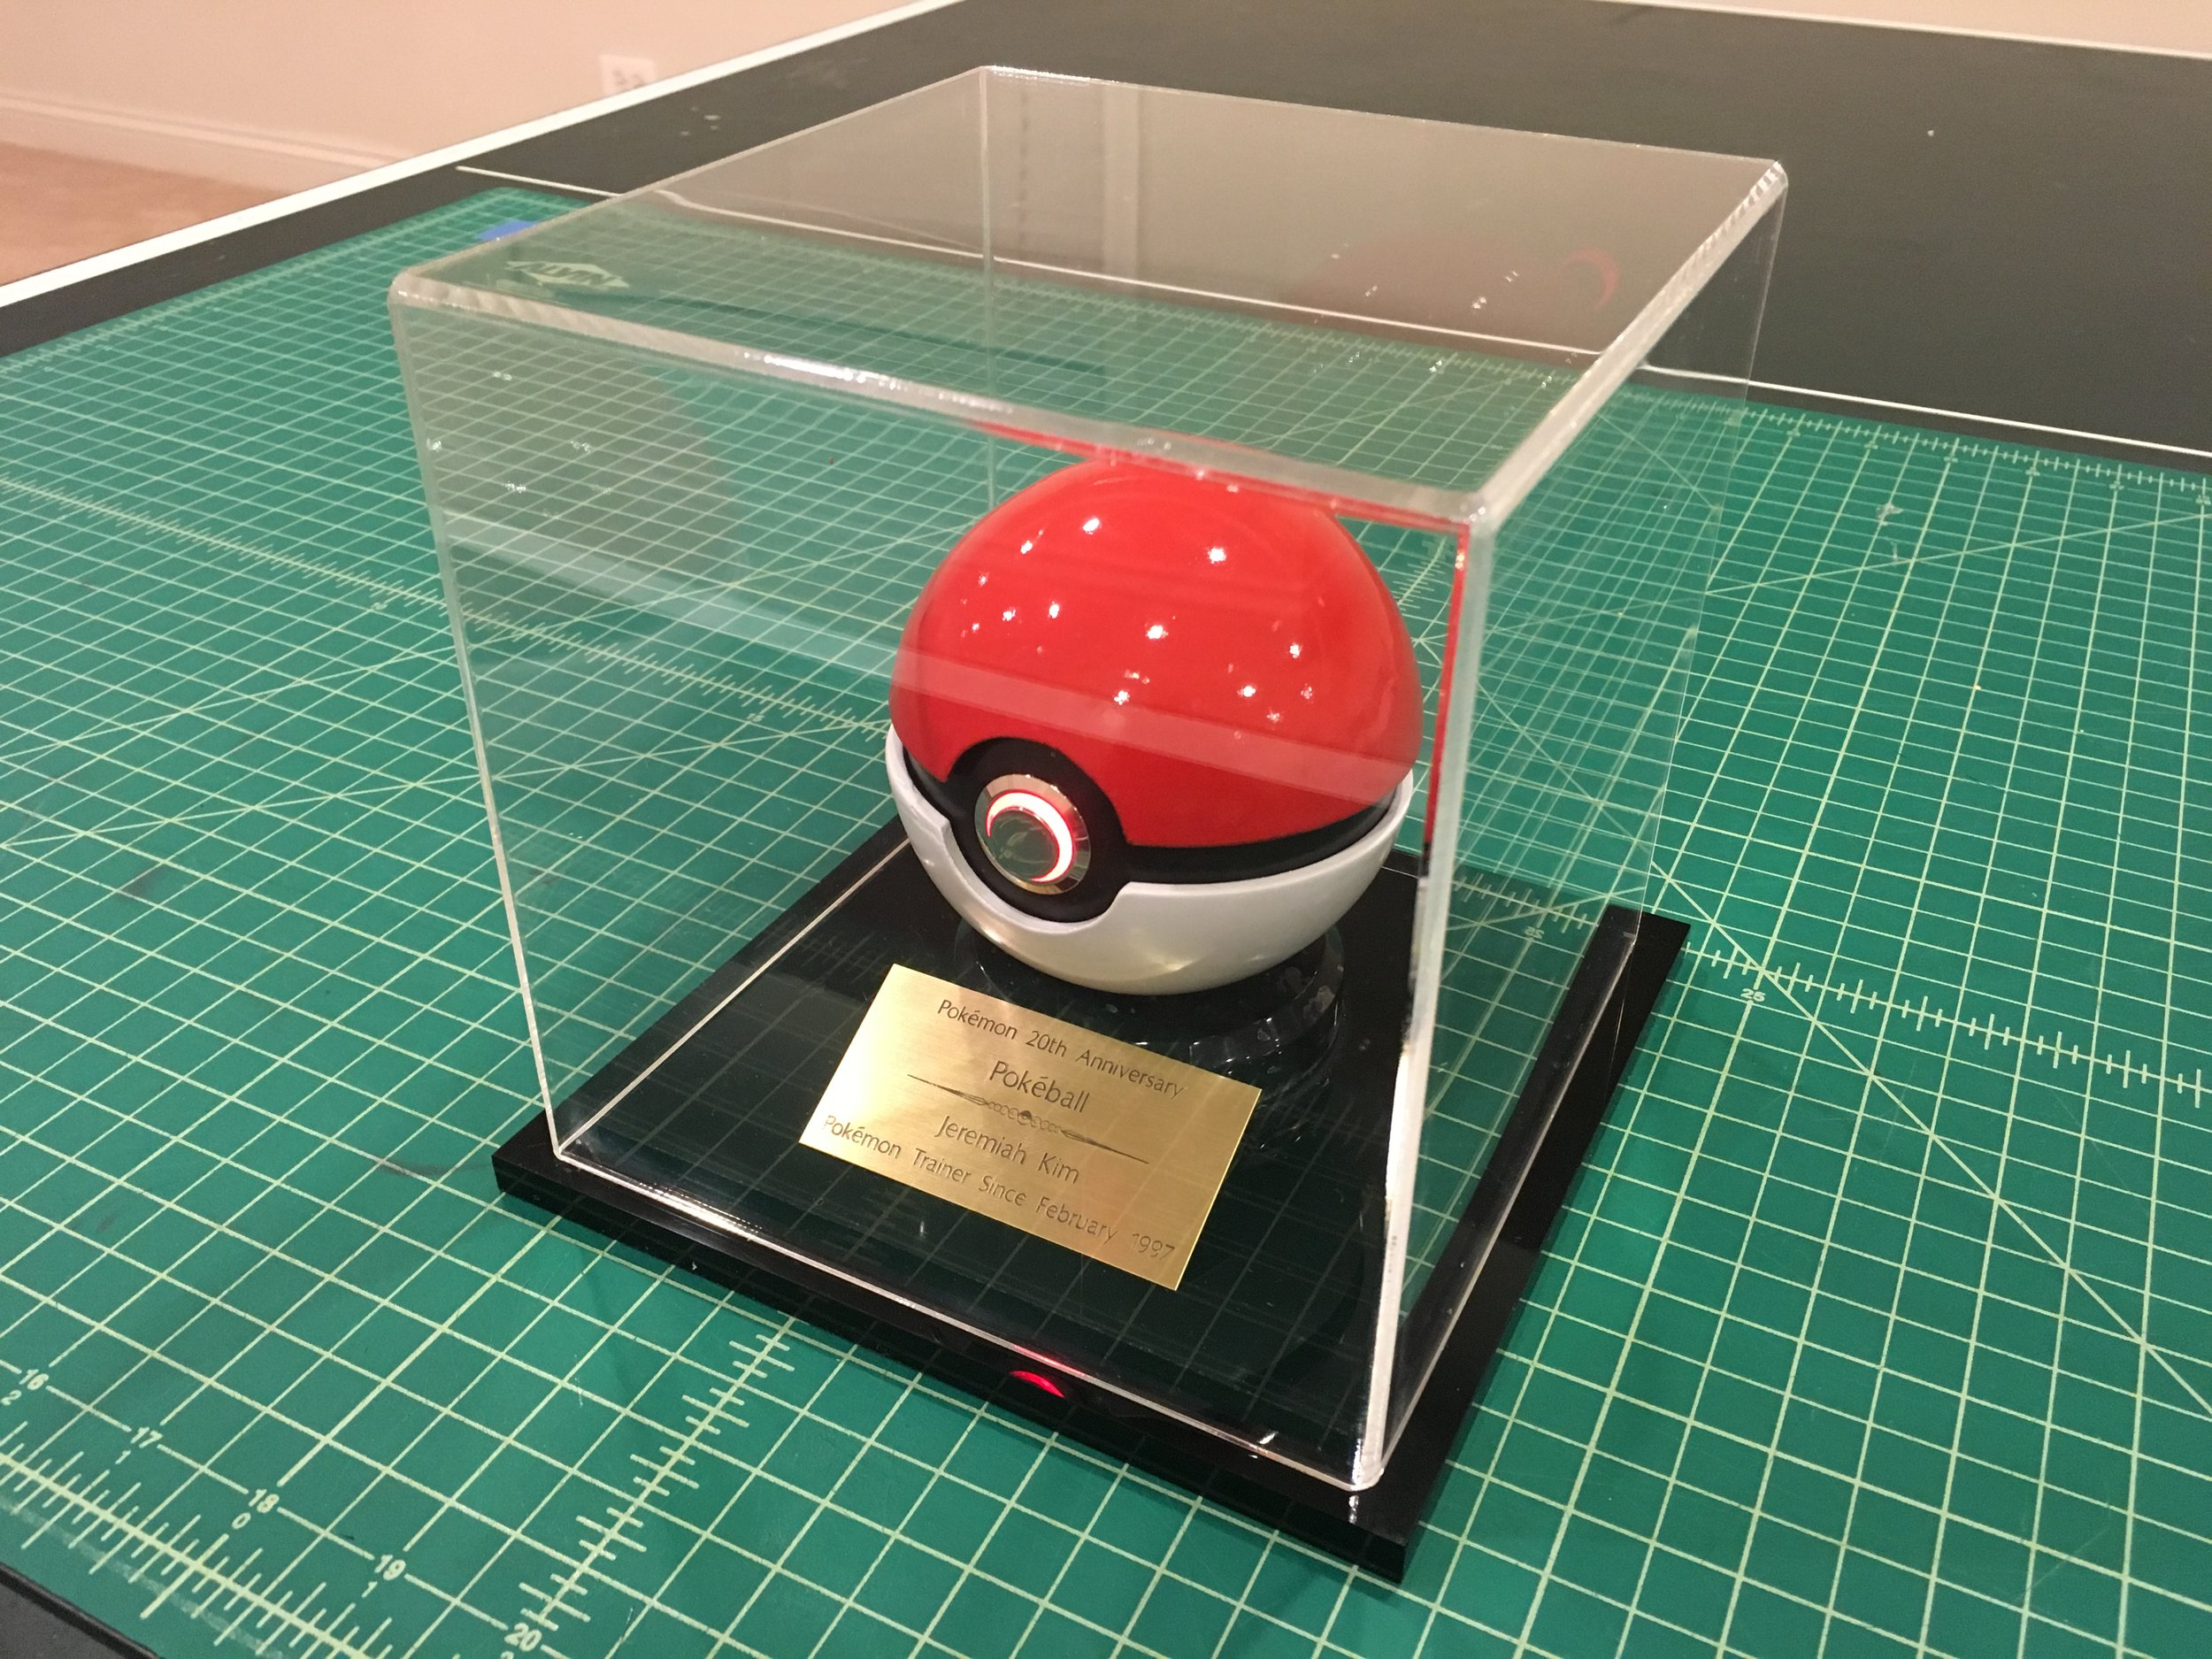 A custom acrylic display case with a plaque was created to display the pokéball in a place of honor.